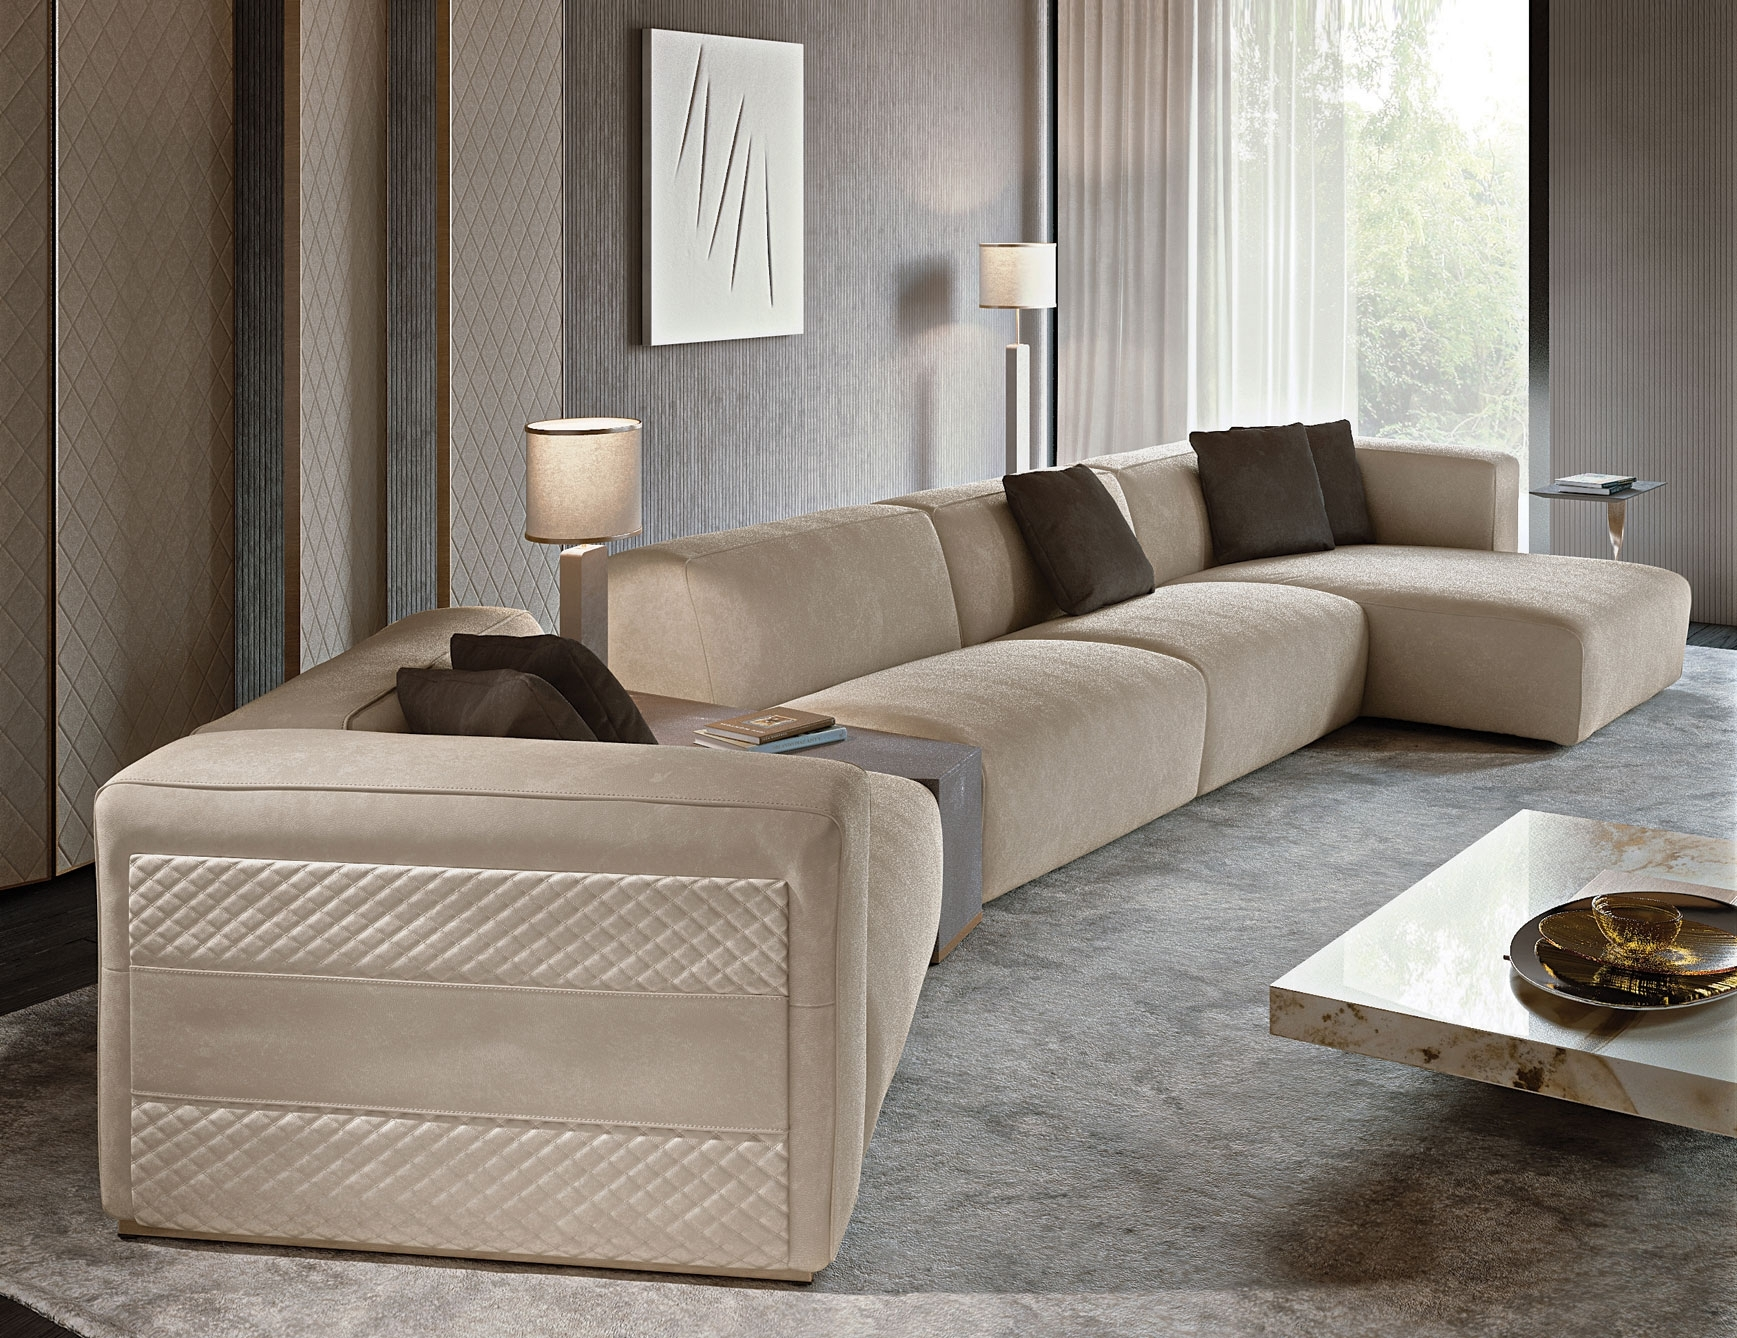 Nella Vetrina Rugiano Freud Sectional Sofa In Suede Regarding High End Sectional Sofas (Image 8 of 10)